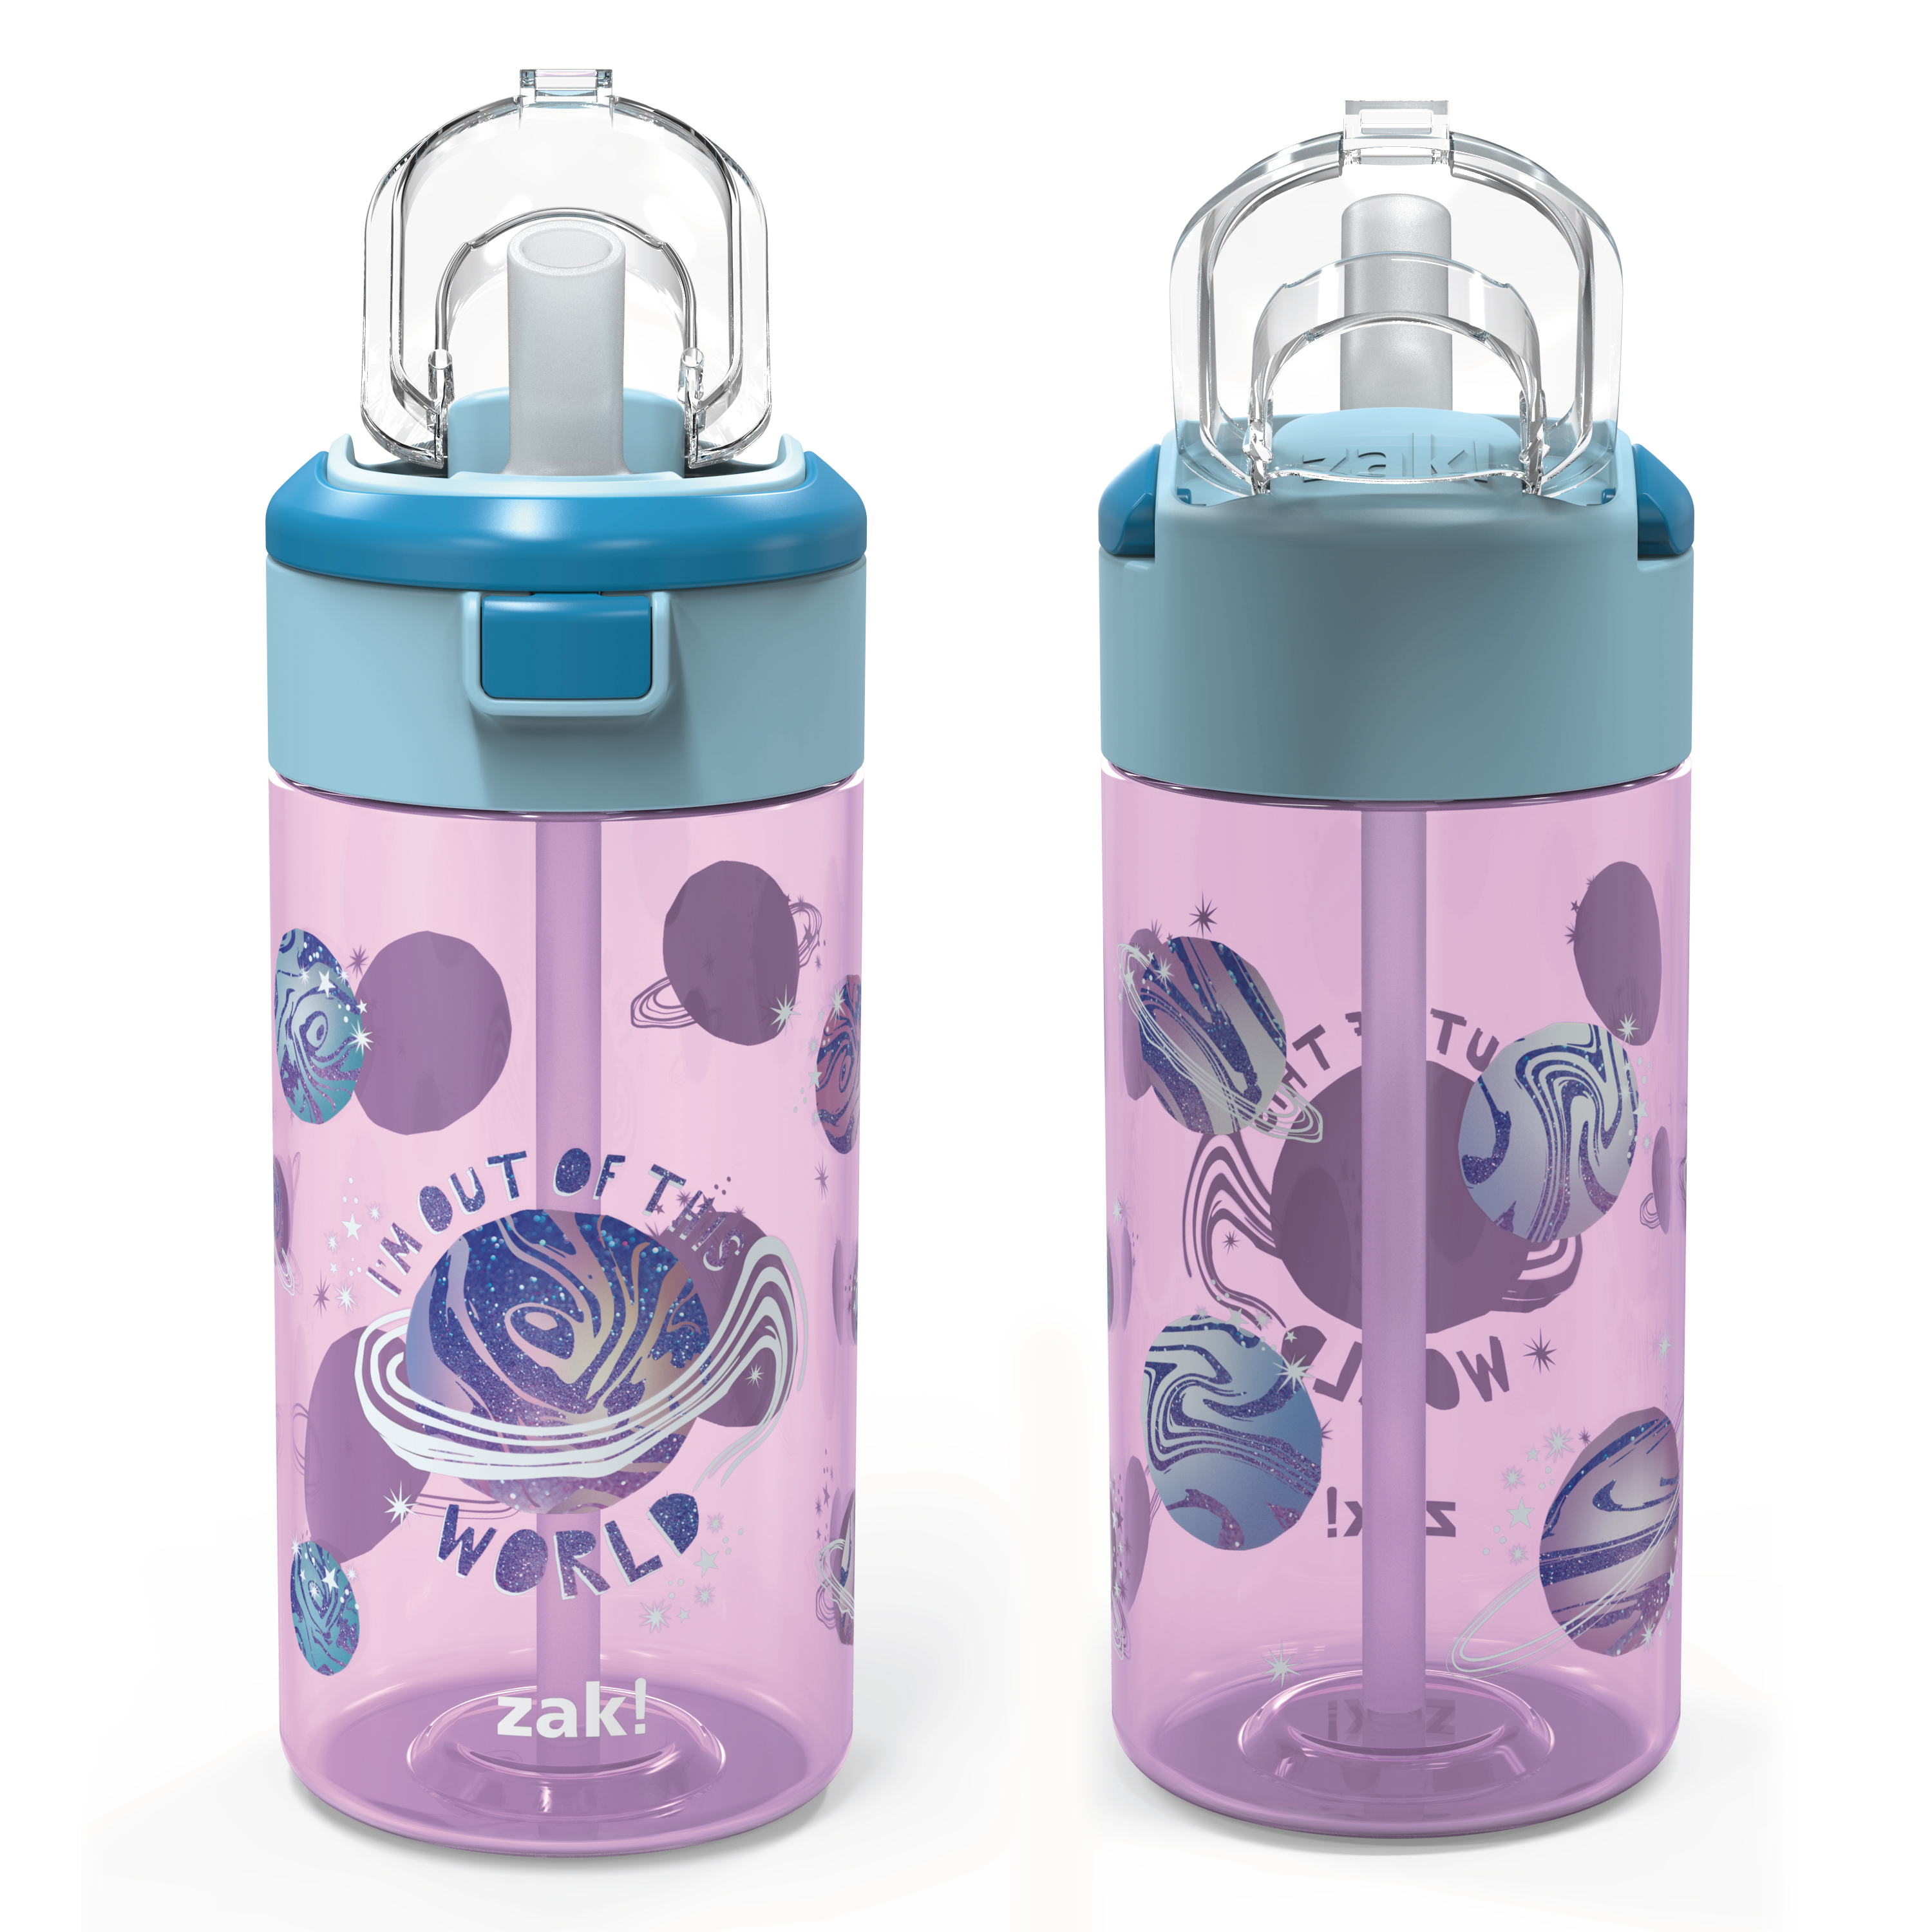 Genesis 18 ounce Water Bottles, Planet, 2-piece set slideshow image 4